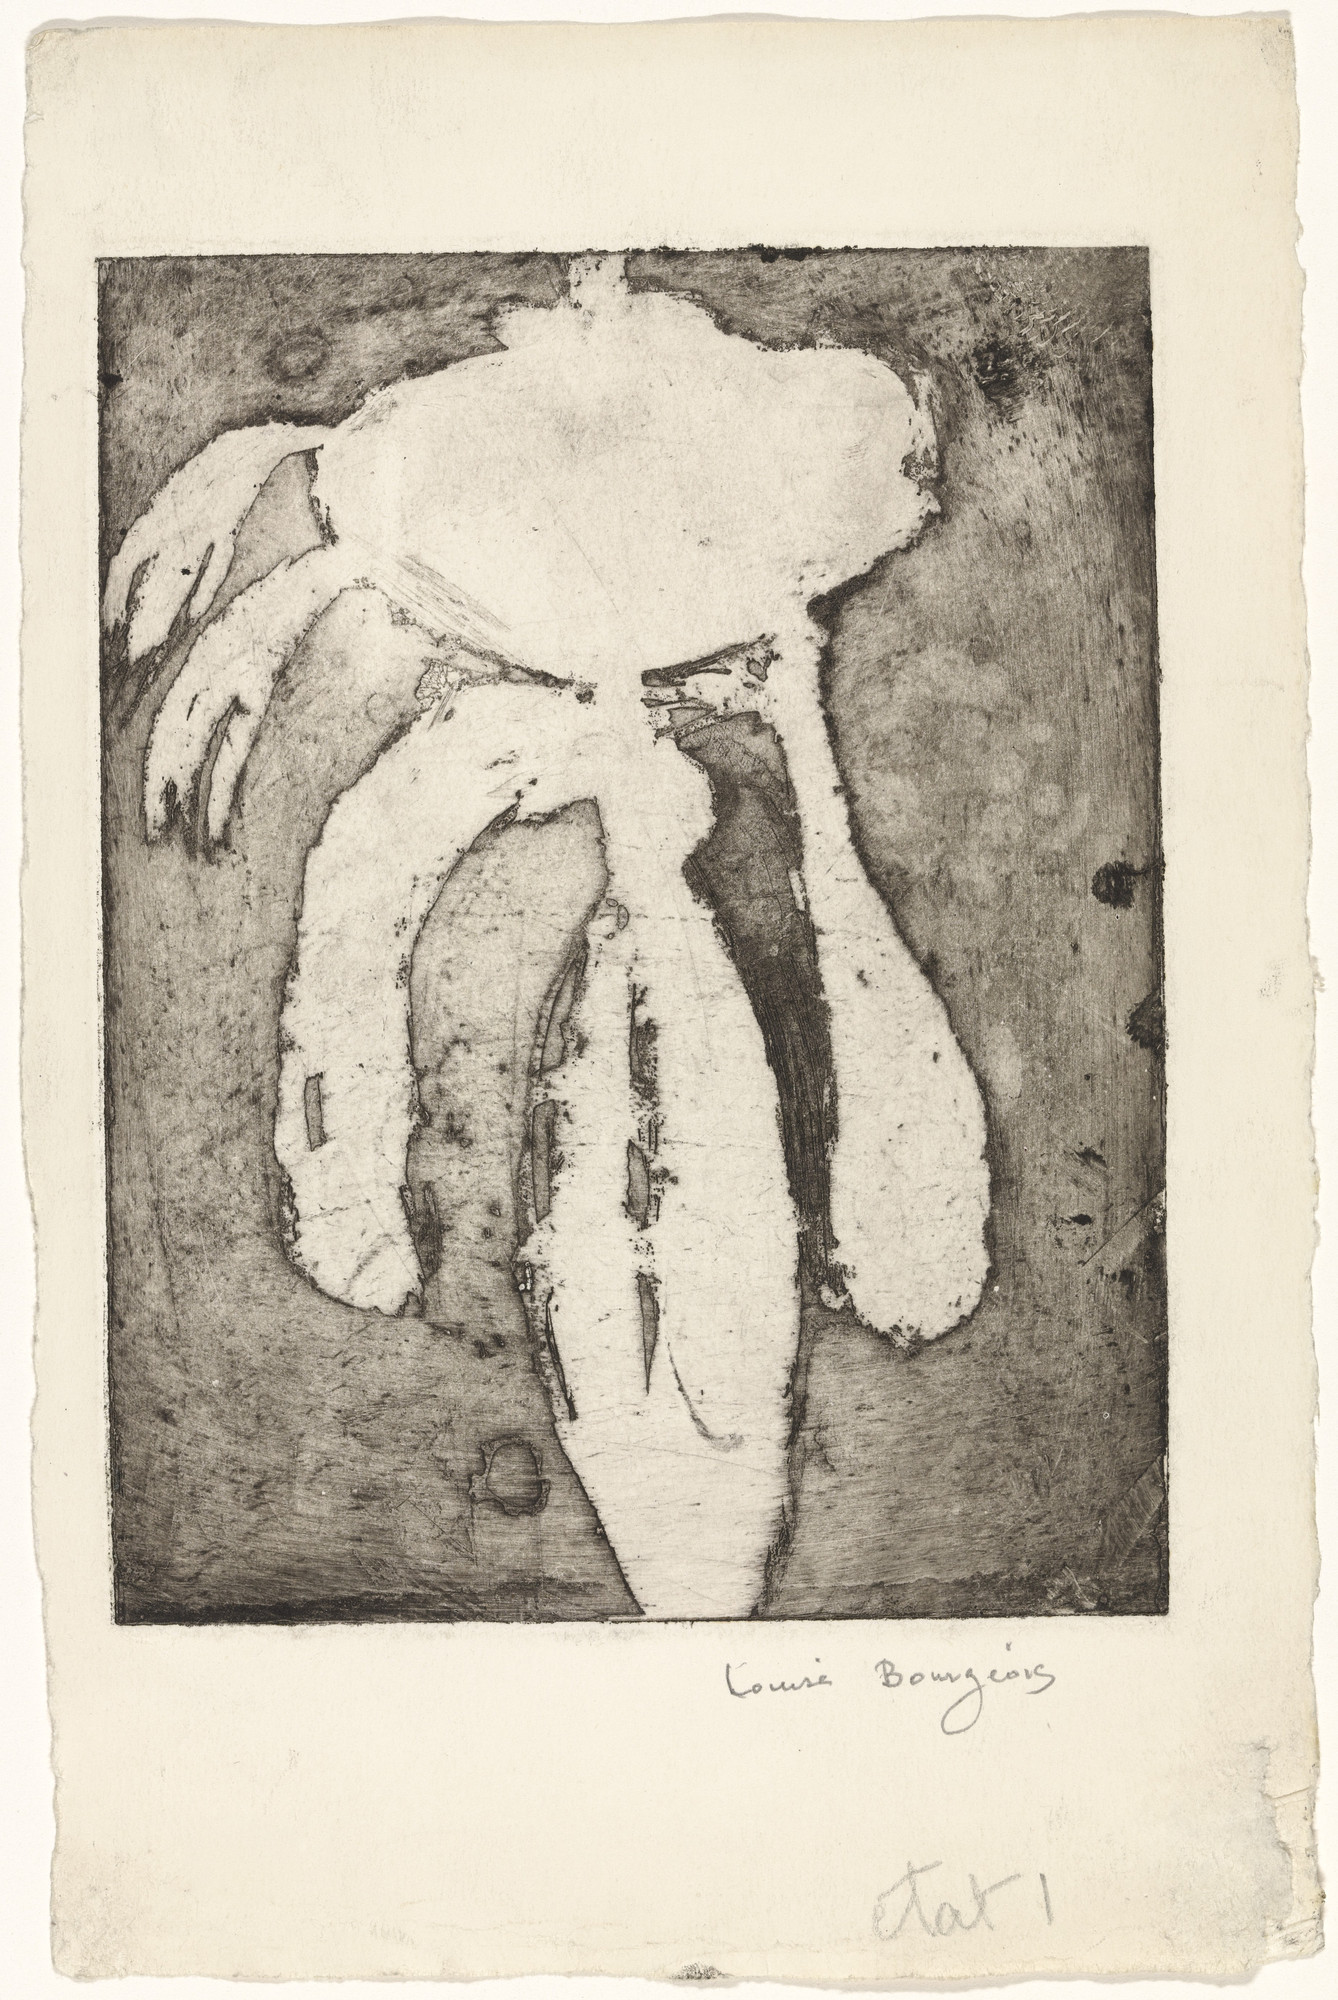 Louise Bourgeois. Personage. c. 1948